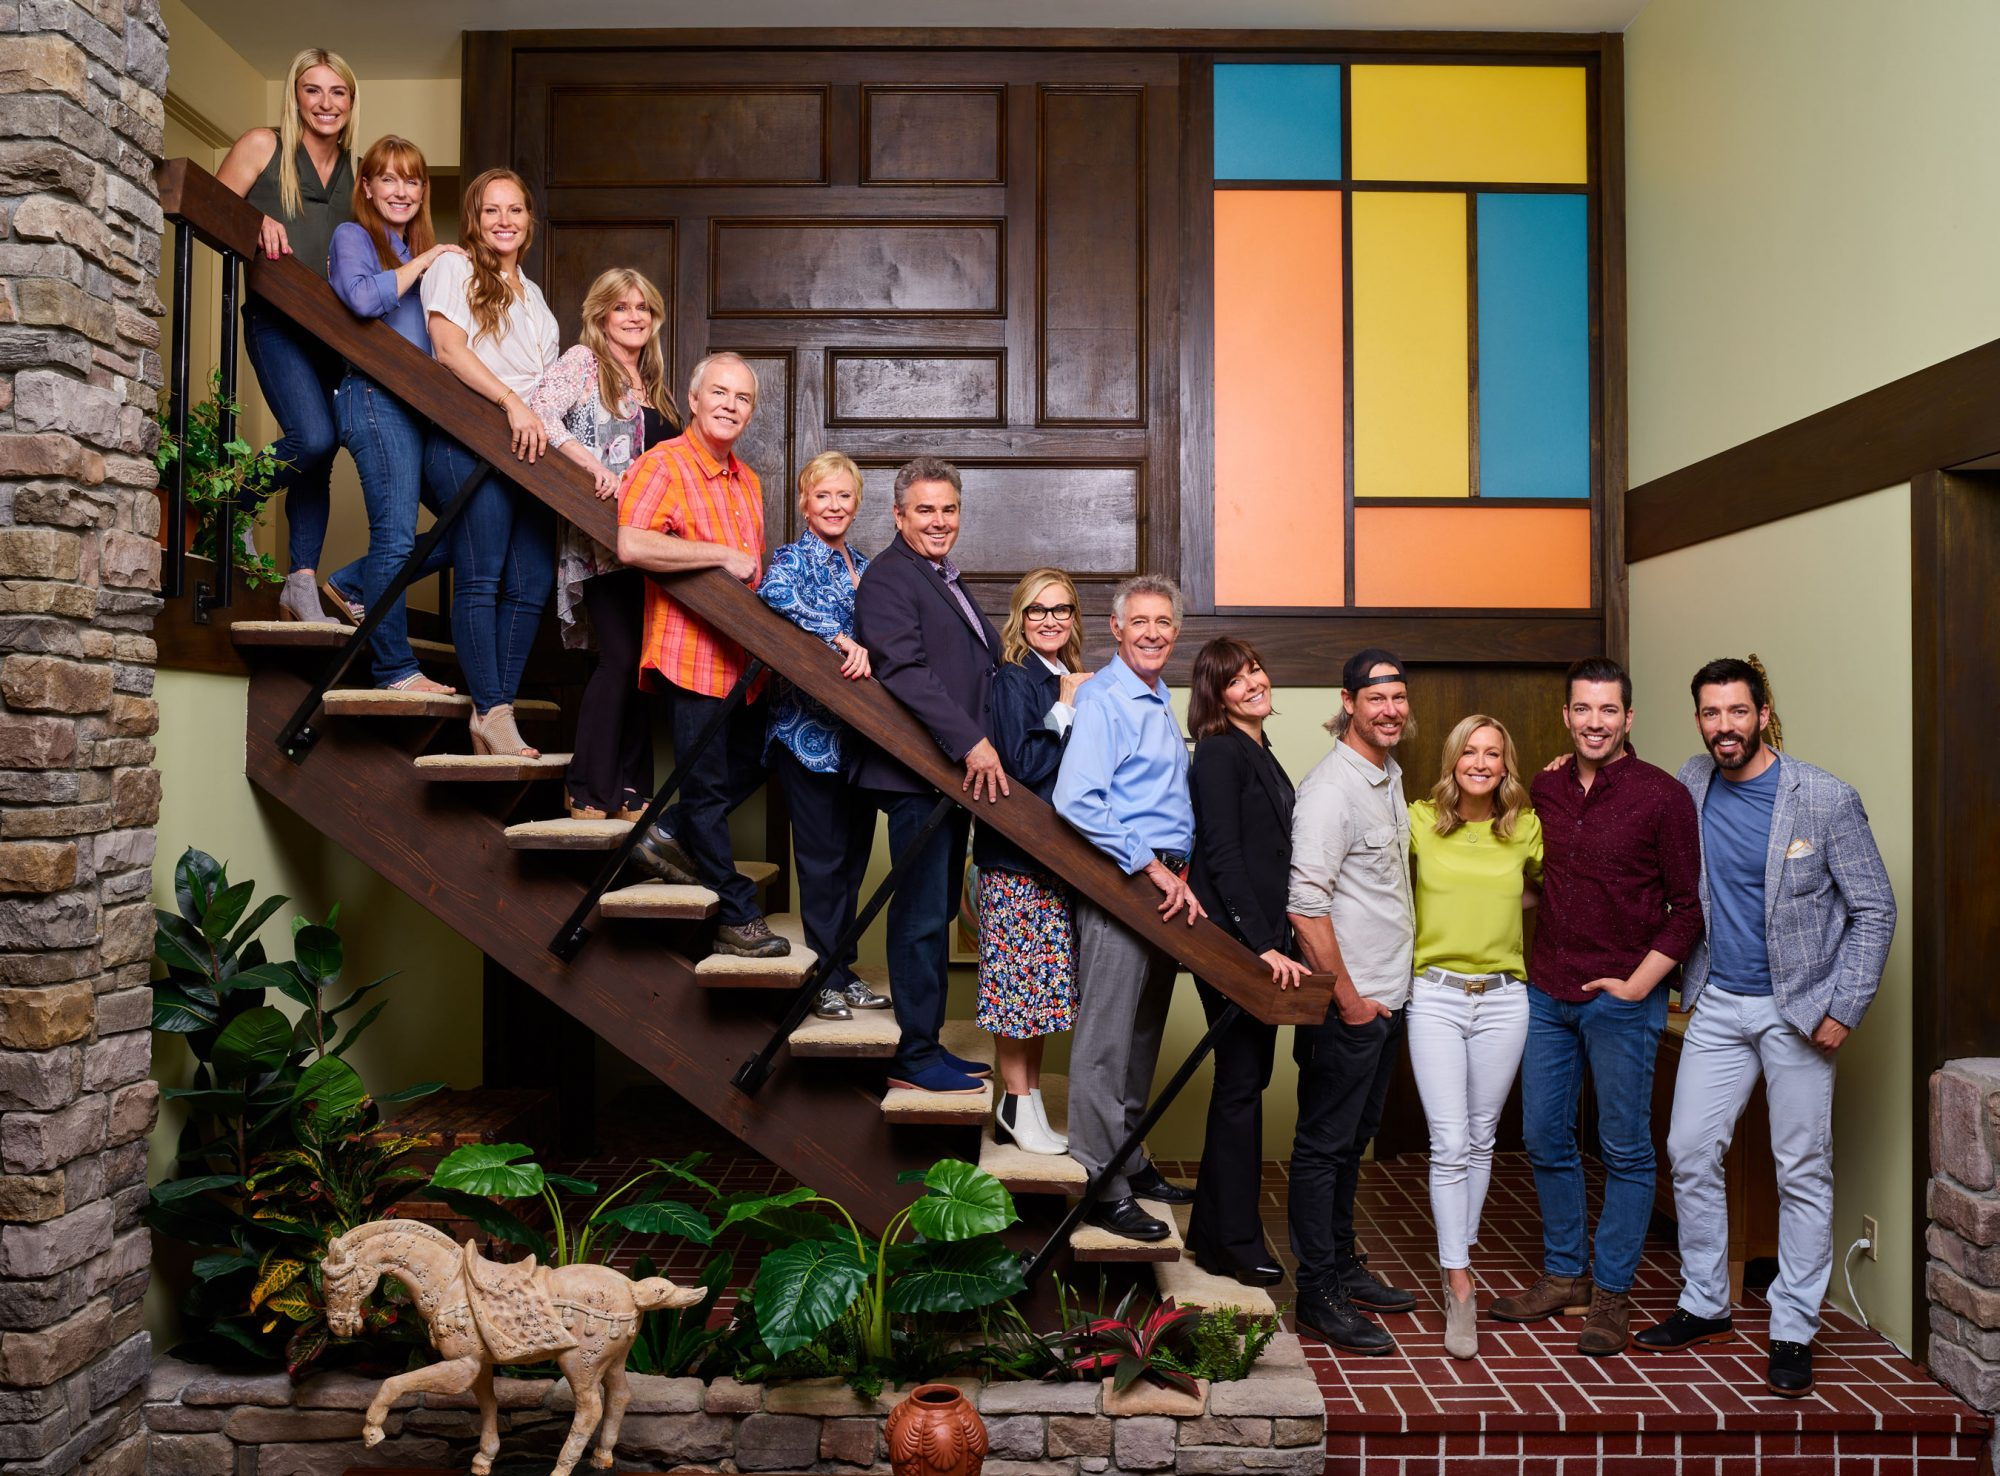 In an explosion of nostalgia, the original Brady Bunch house has been restored to its 1970s glory by the stars of the sitcom along with HGTV pros. A Very Brady Renovation will air in September.